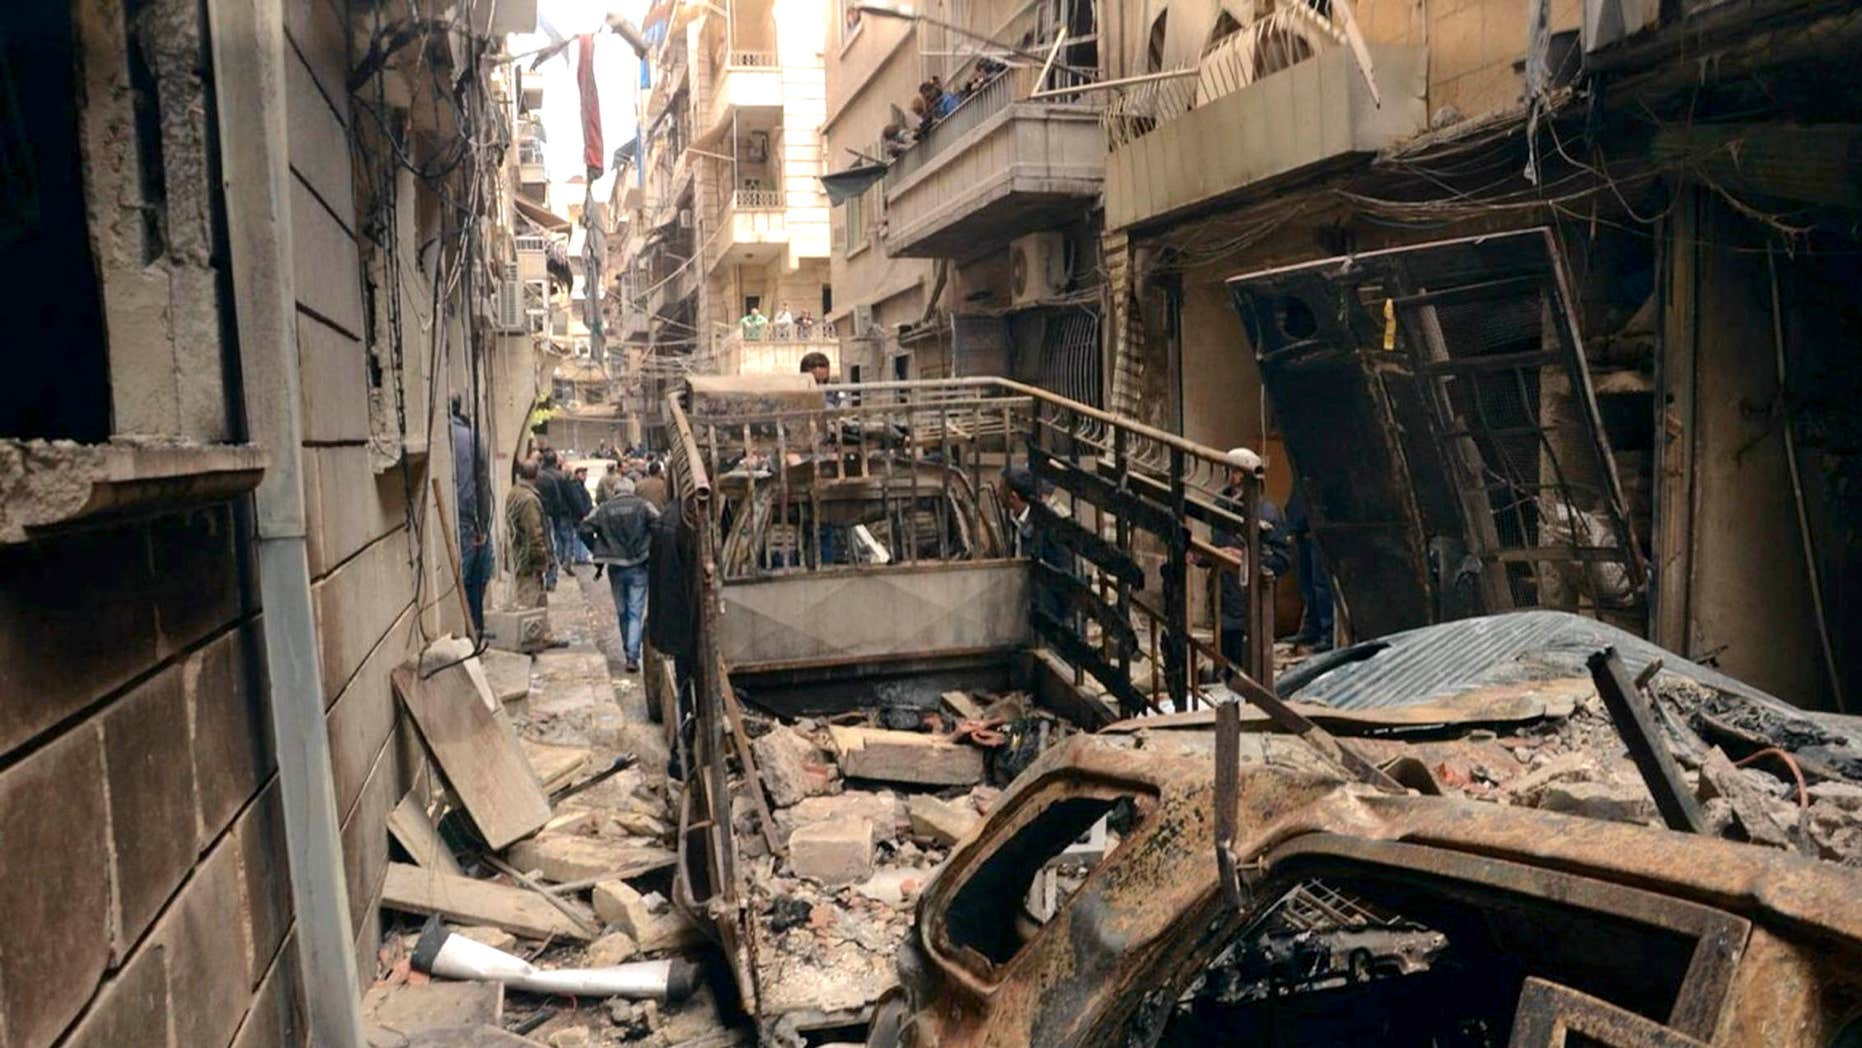 April 11, 2015: In this photo released by the Syrian official news agency SANA, Syrians gather in a street that was hit by shelling, in the predominantly Christian and Armenian neighborhood of Suleimaniyeh, Aleppo, Syria.